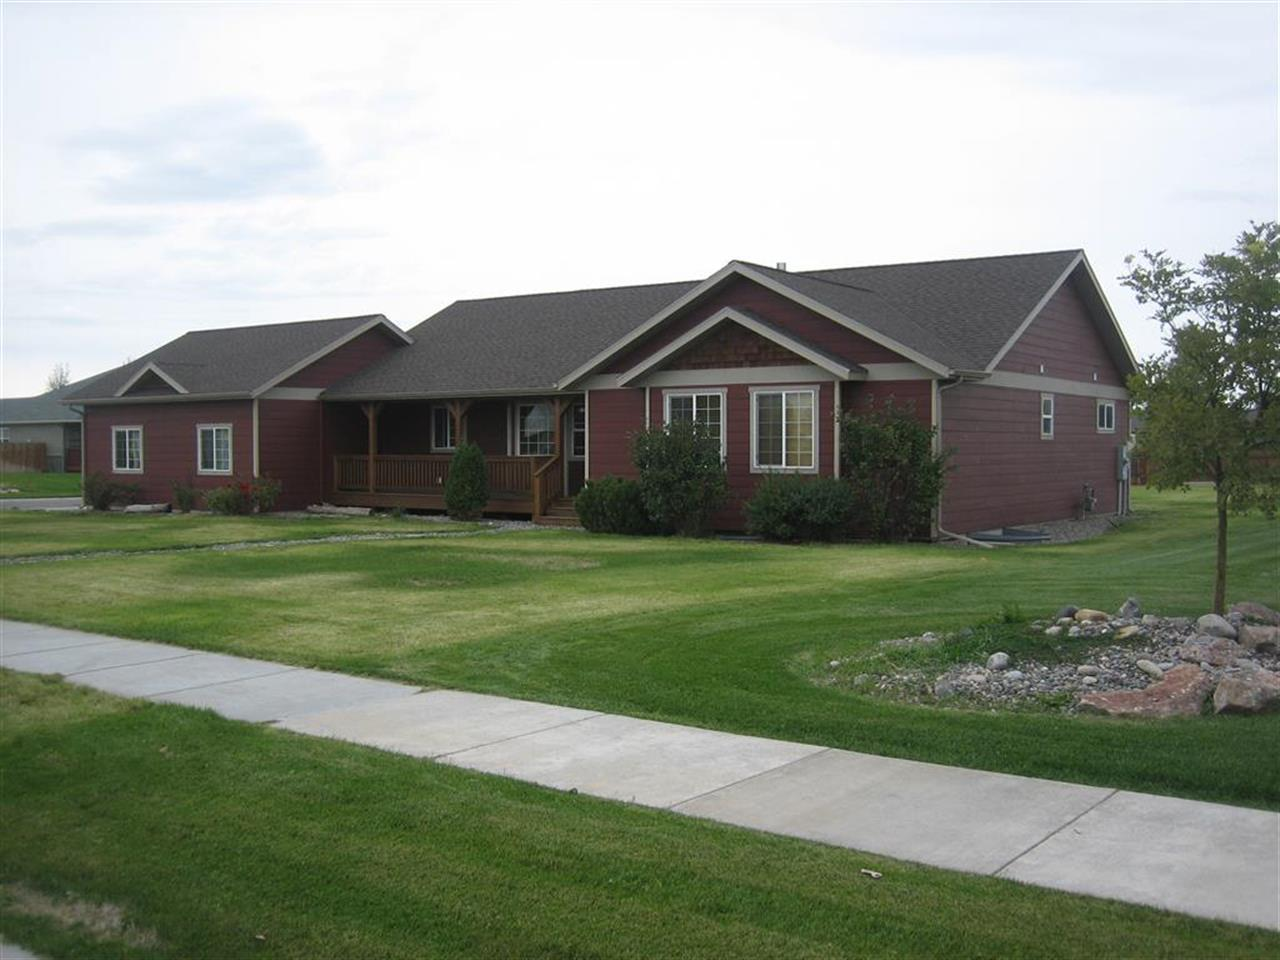 Eminence|Spacious Rancher on Large Lot for Sale in the Landmark Subdivision, Belgrade, Montana